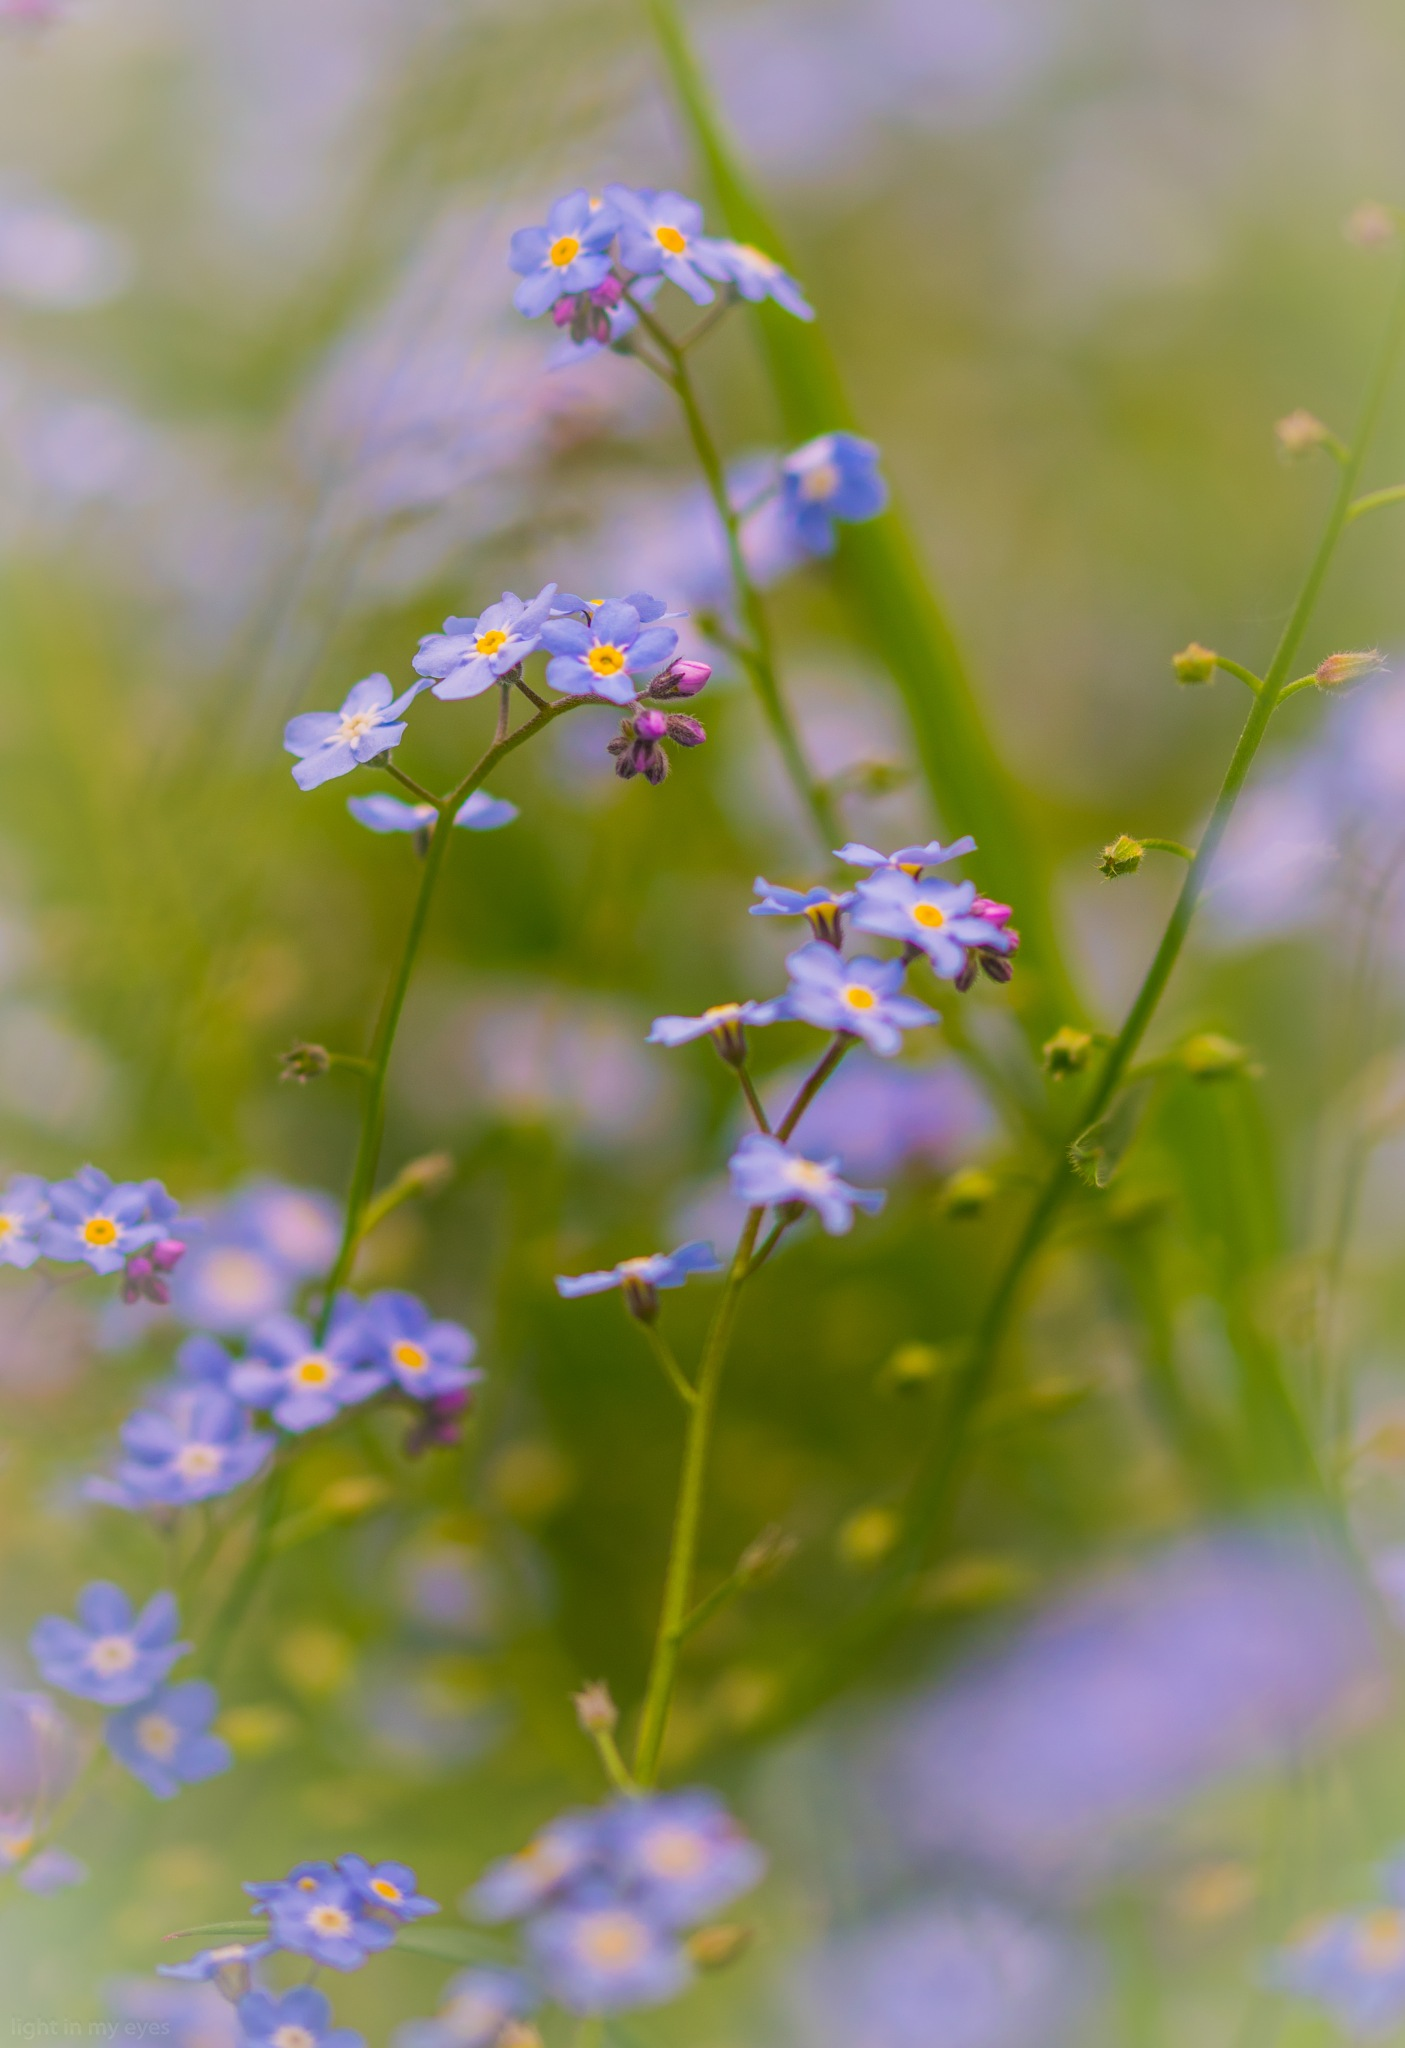 forgetmenot by neil.hickman1